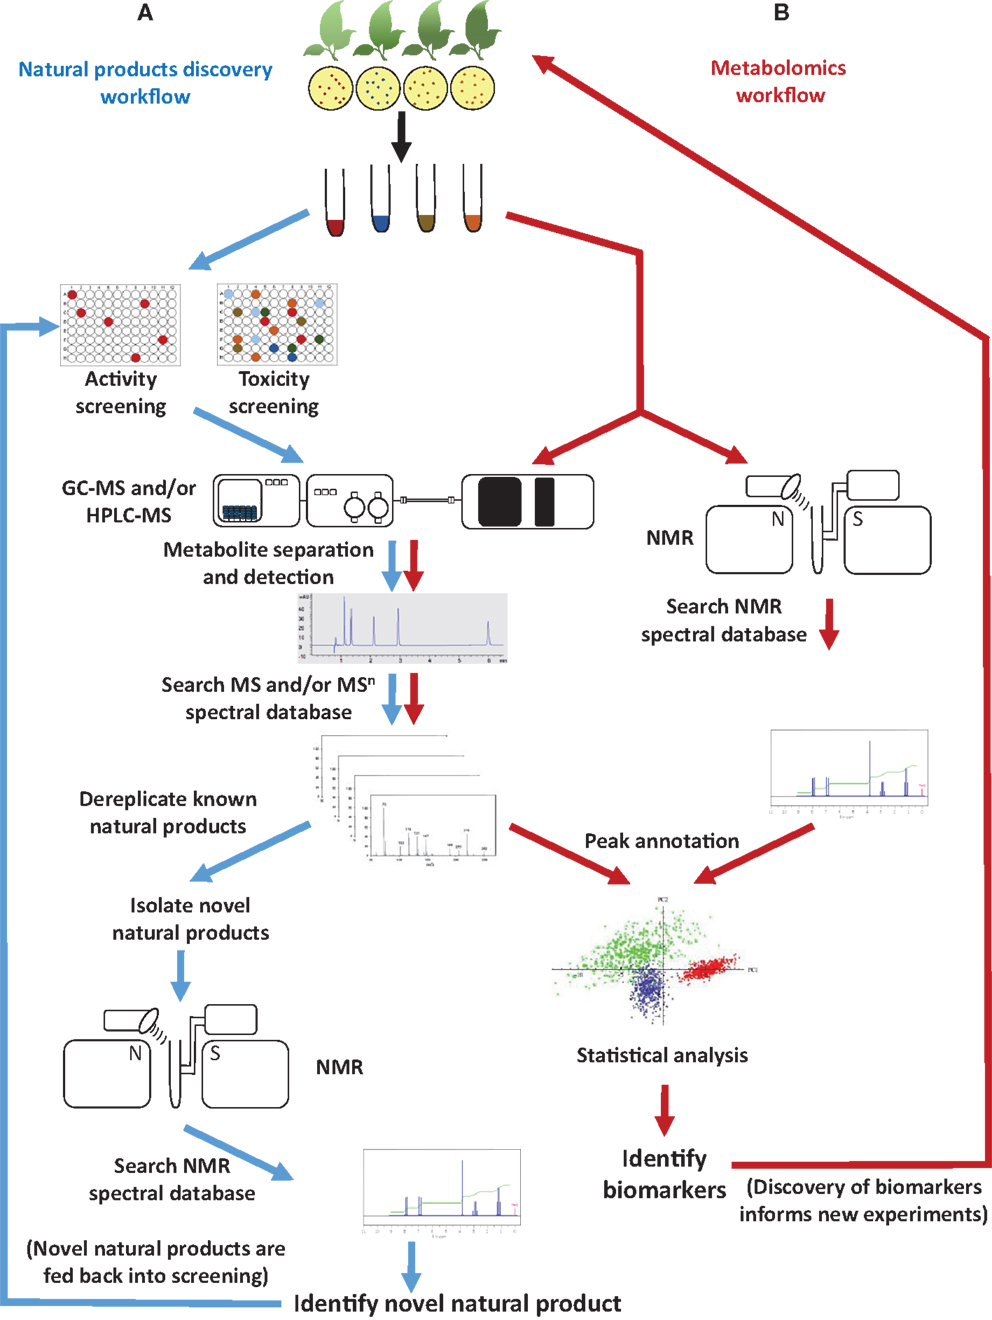 Login usingYou can login by using one of your existing accounts.